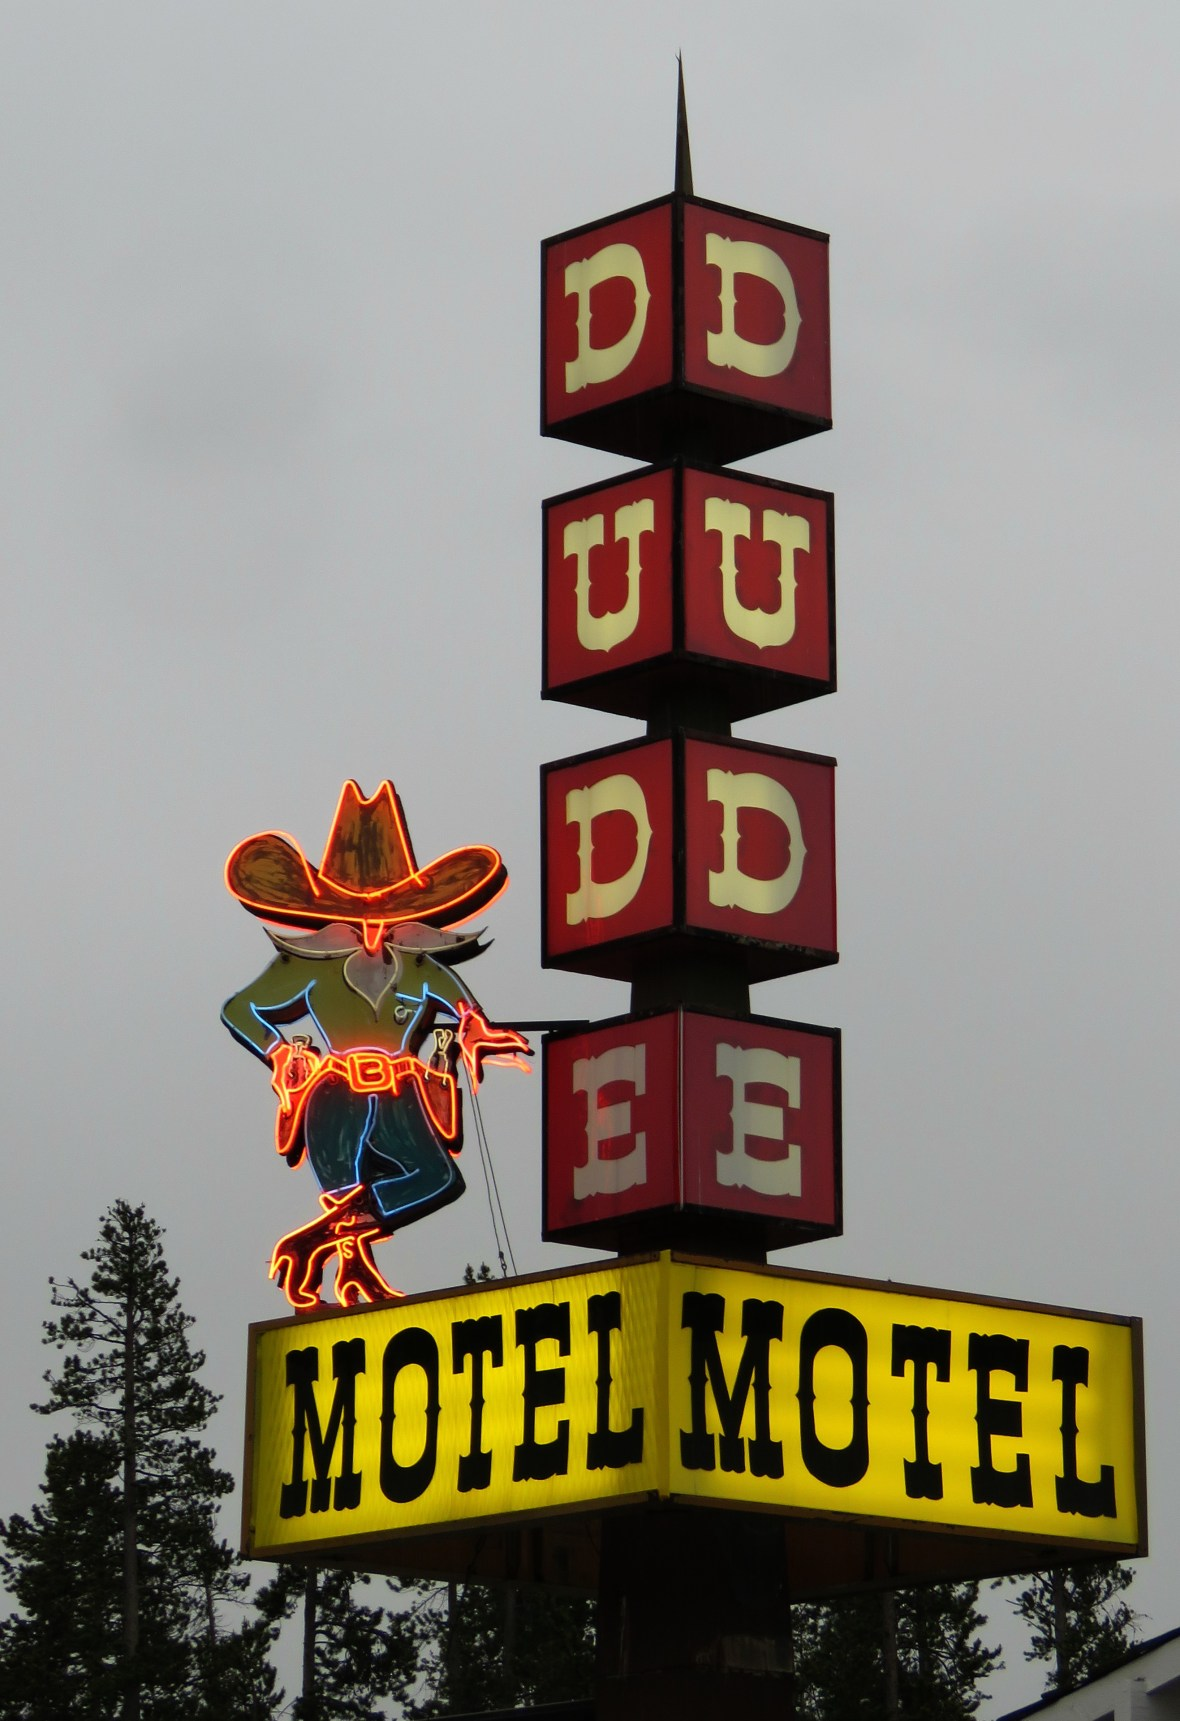 The Dude Motel - 3 Madison Ave, West Yellowstone, Montana U.S.A. - June 15, 2016